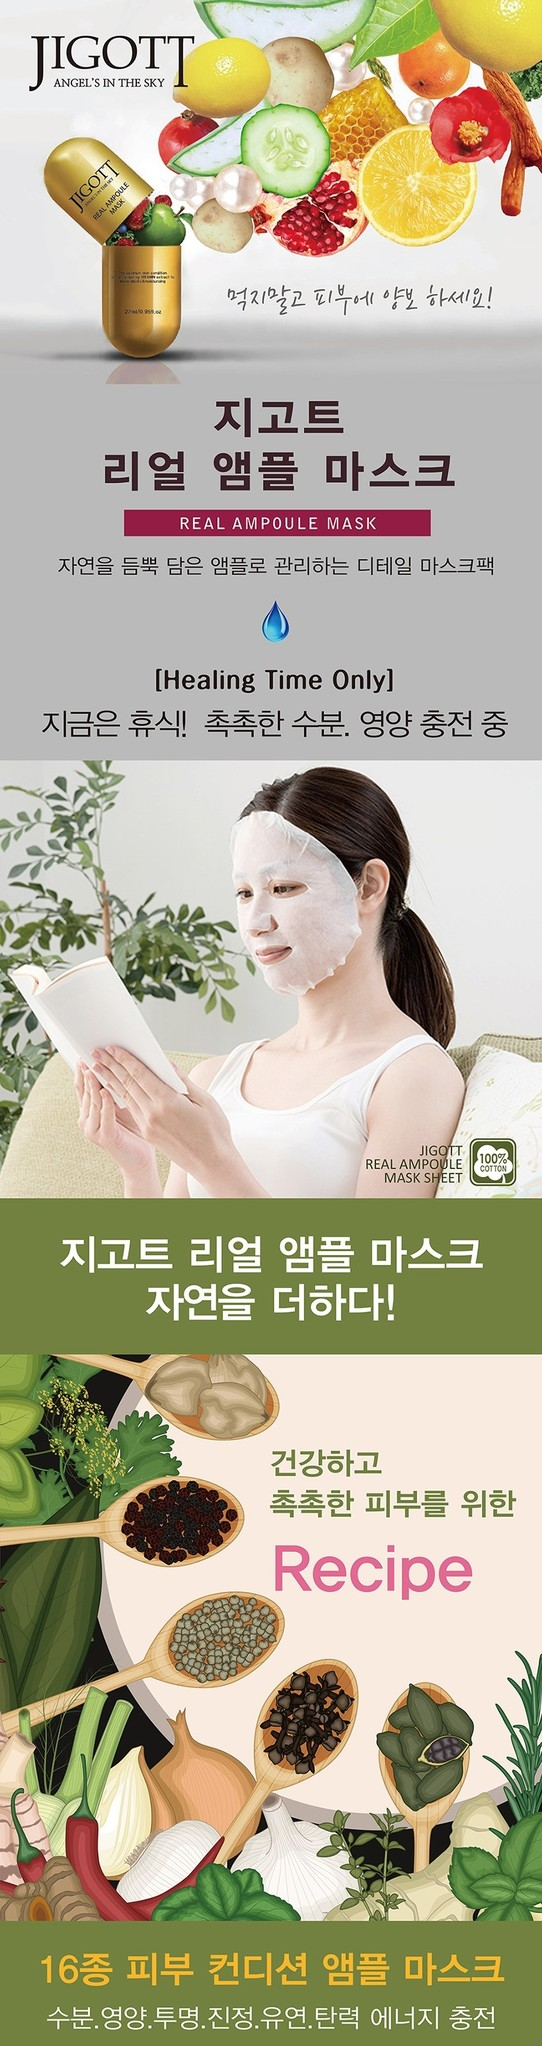 Real Ampoule Mask [Cucumber]-2